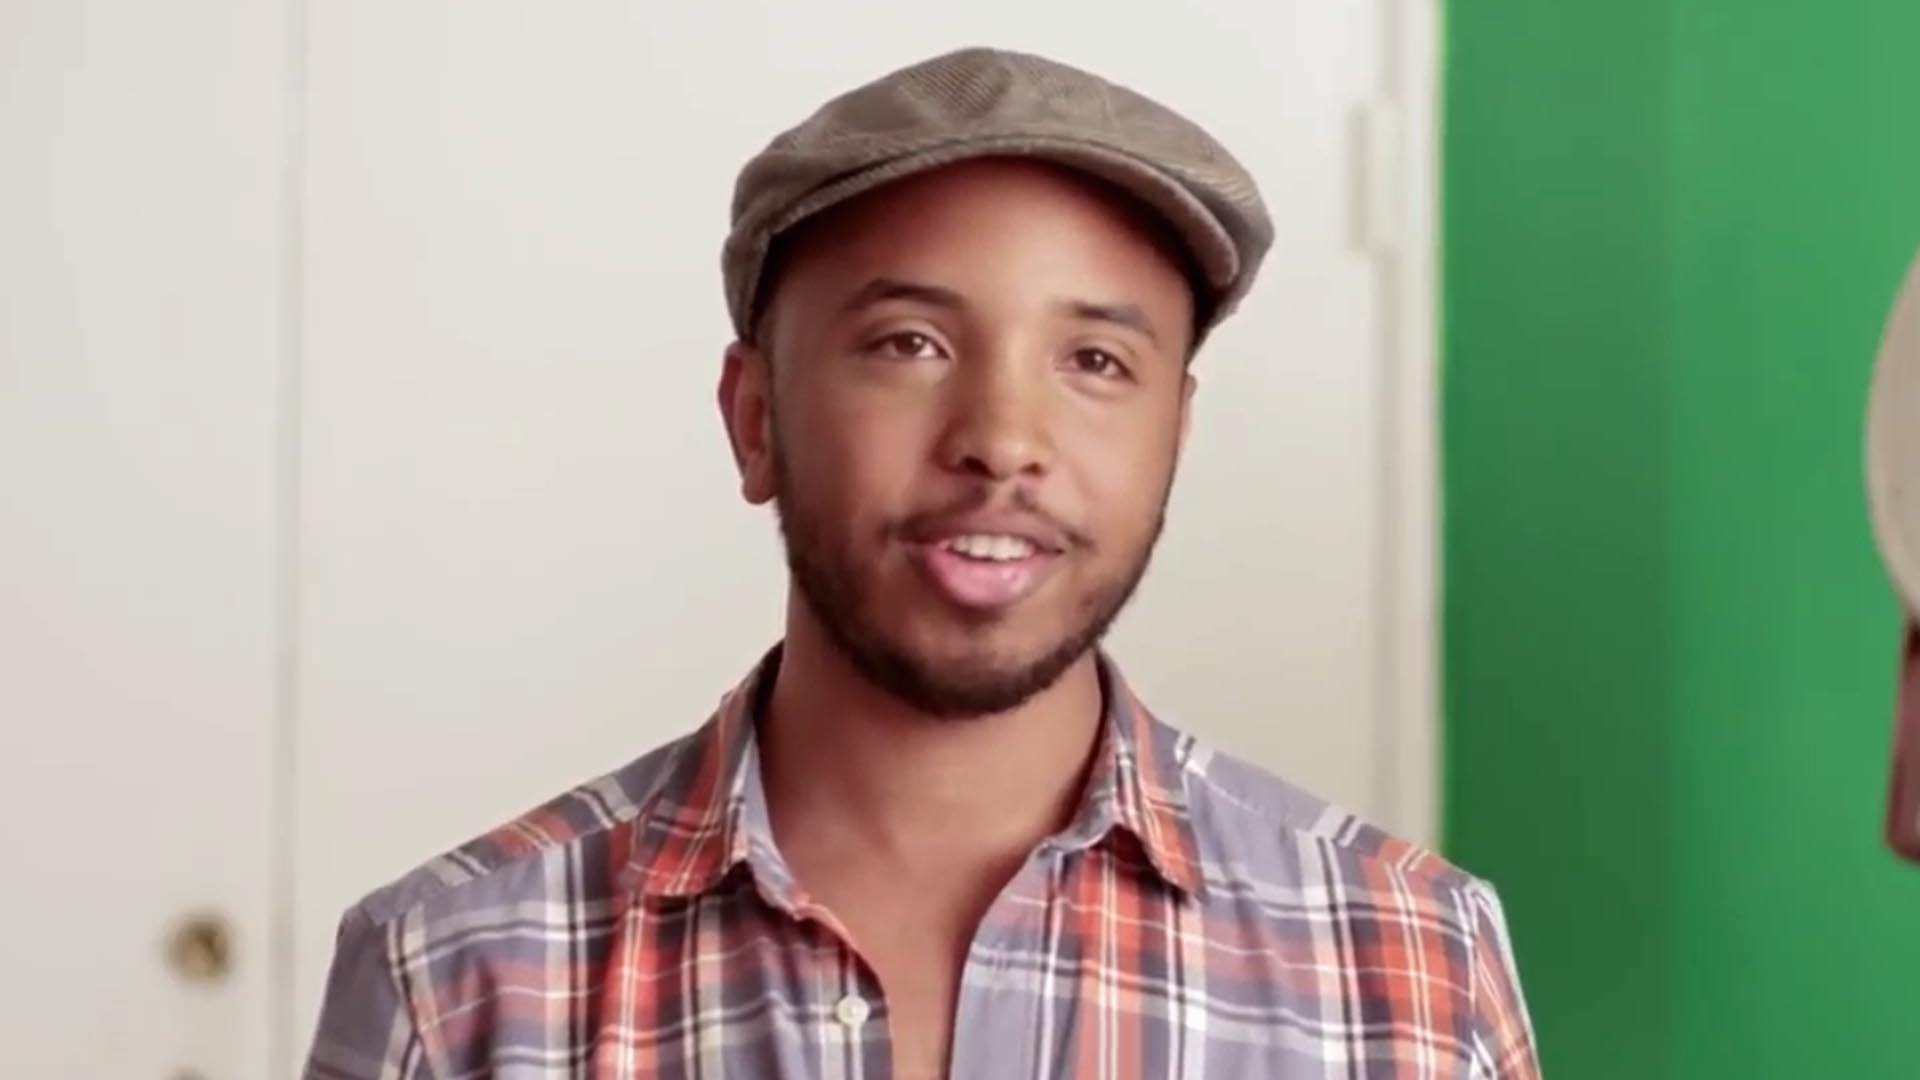 justin simien agejustin simien instagram, justin simien partner, justin simien net worth, justin simien spike lee, justin simien twitter, justin simien interview, justin simien cameo, justin simien husband, justin simien movies, justin simien age, justin simien wiki, justin simien jerry skyler, justin simien director, justin simien chapman university, justin simien wife, justin simien college, justin simien production company, justin simien don't @ me, justin simien bio, justin simien mr griggins